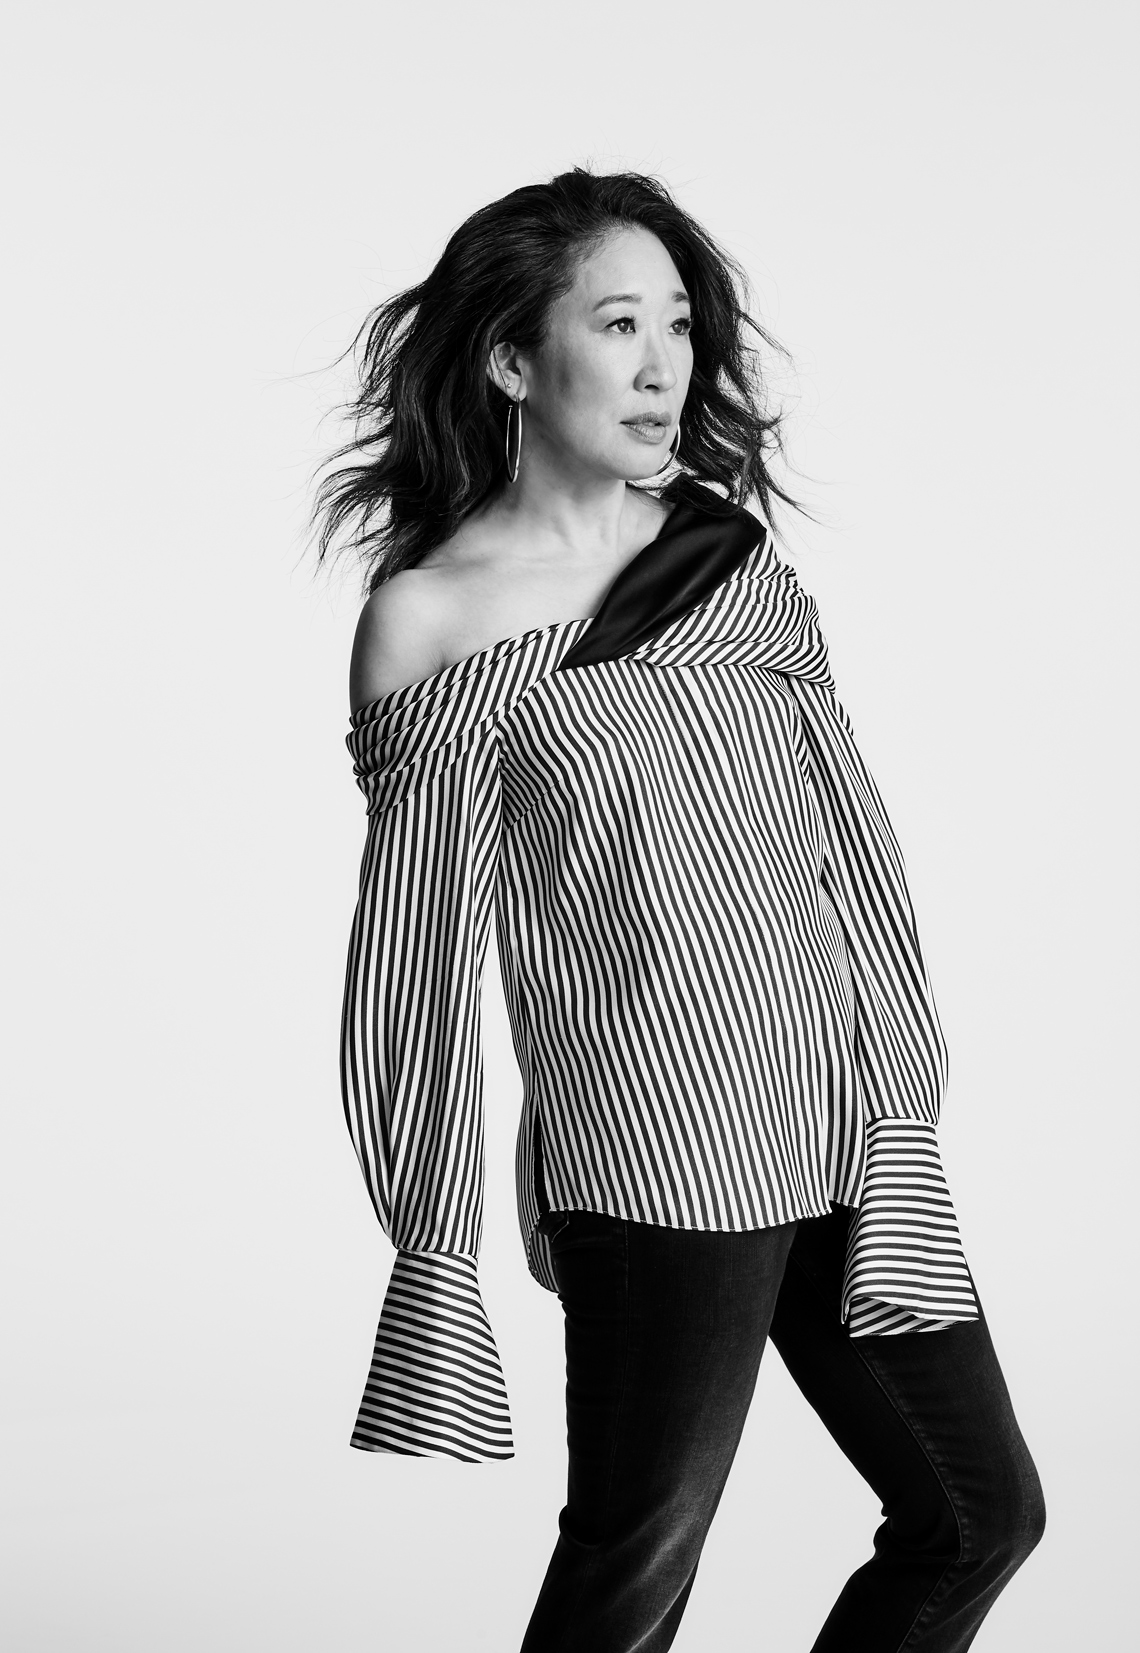 Sandra Oh, actress